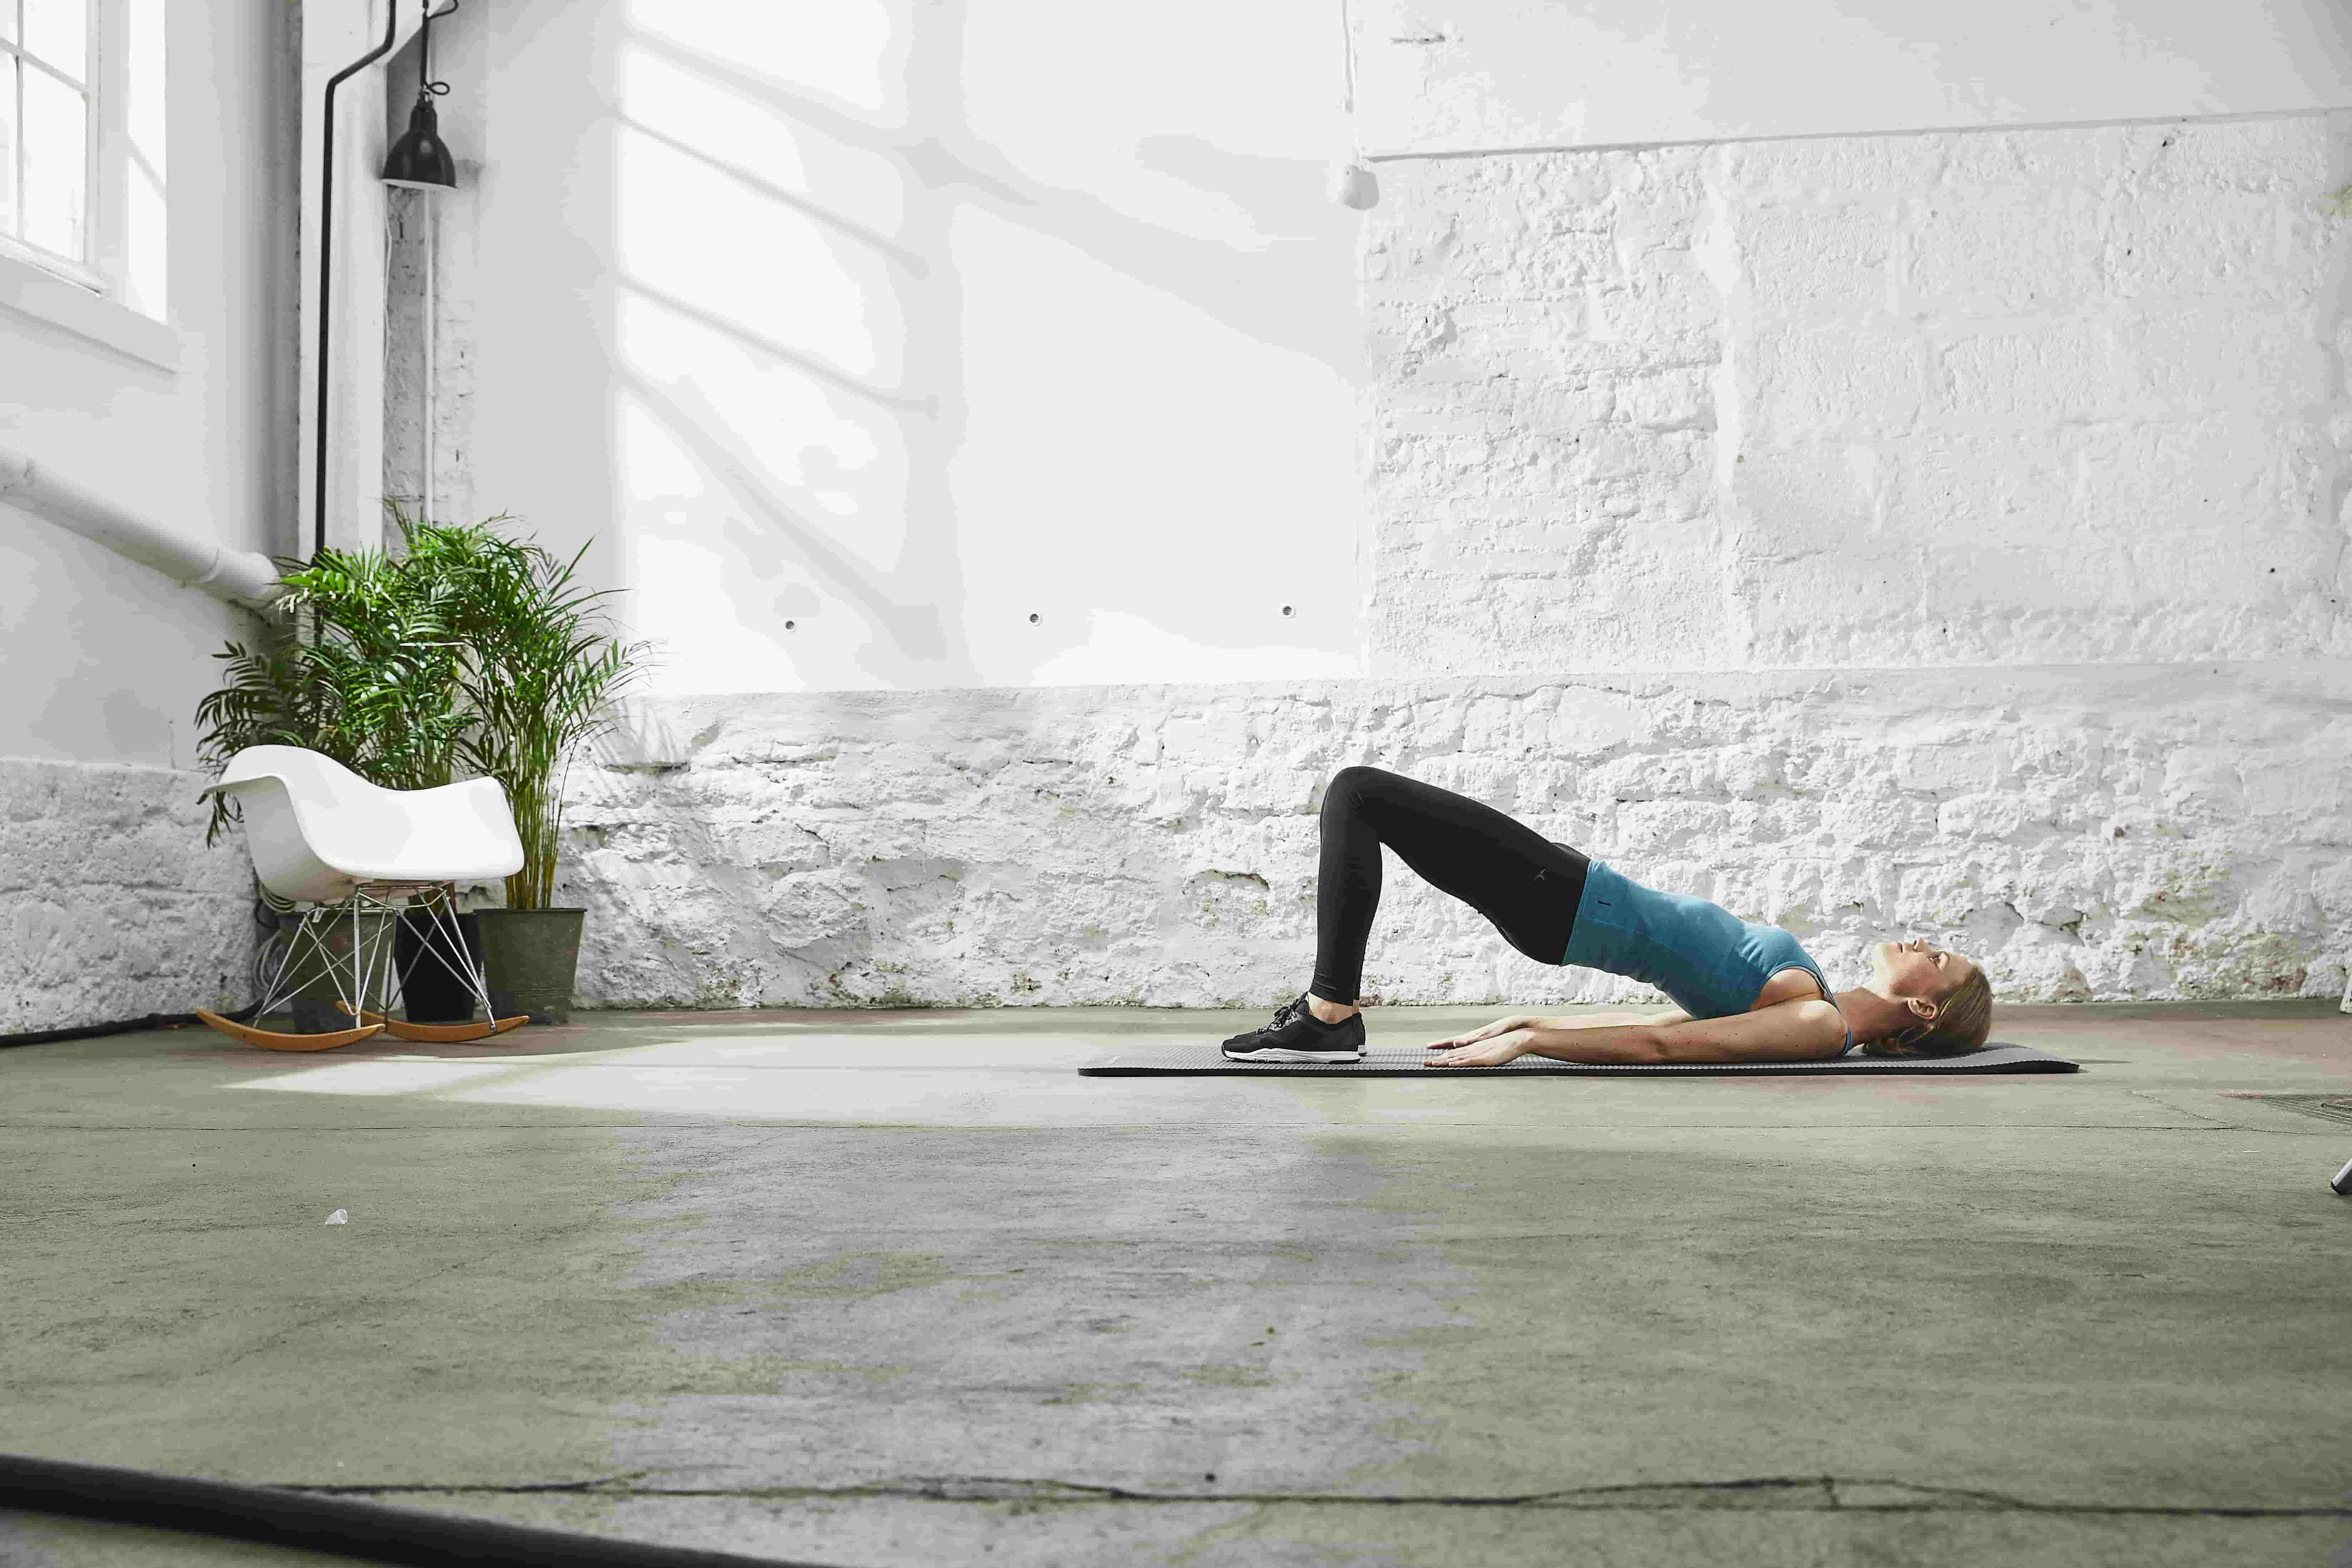 4 Best Pilates Home Exercises To Do During Lockdown